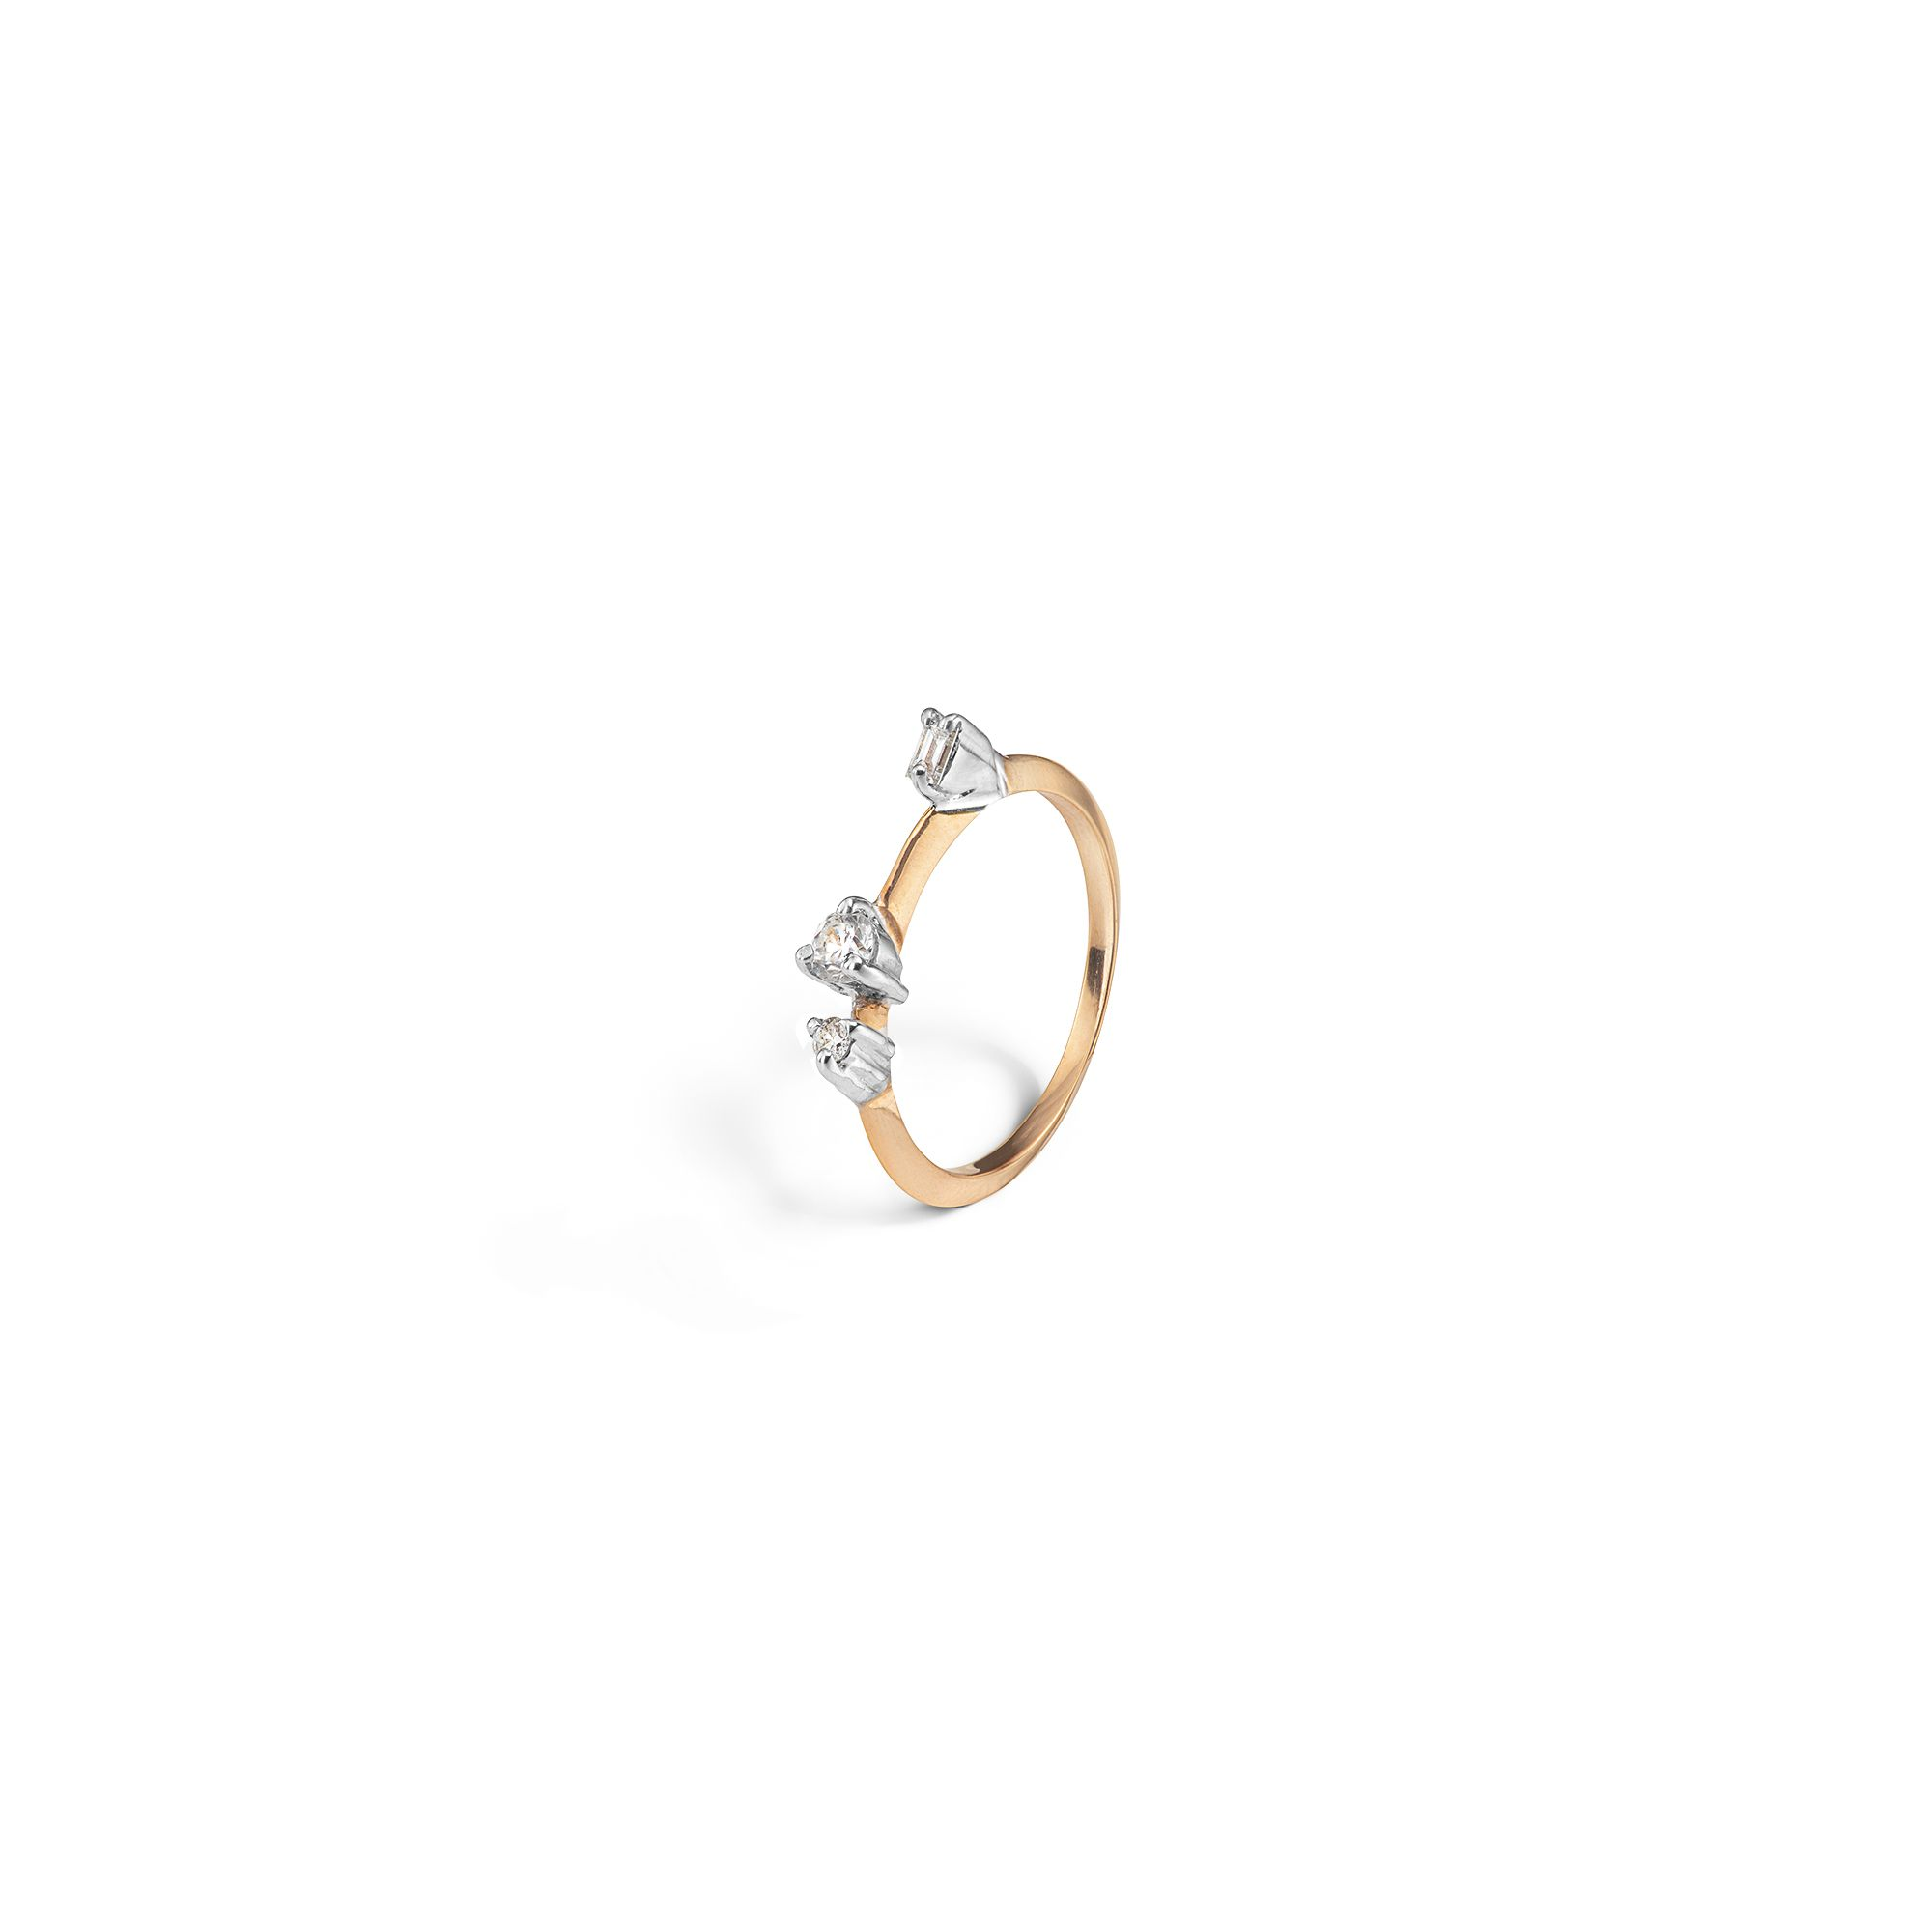 Rose gold 'Balance' ring Ring in rose gold and diamonds